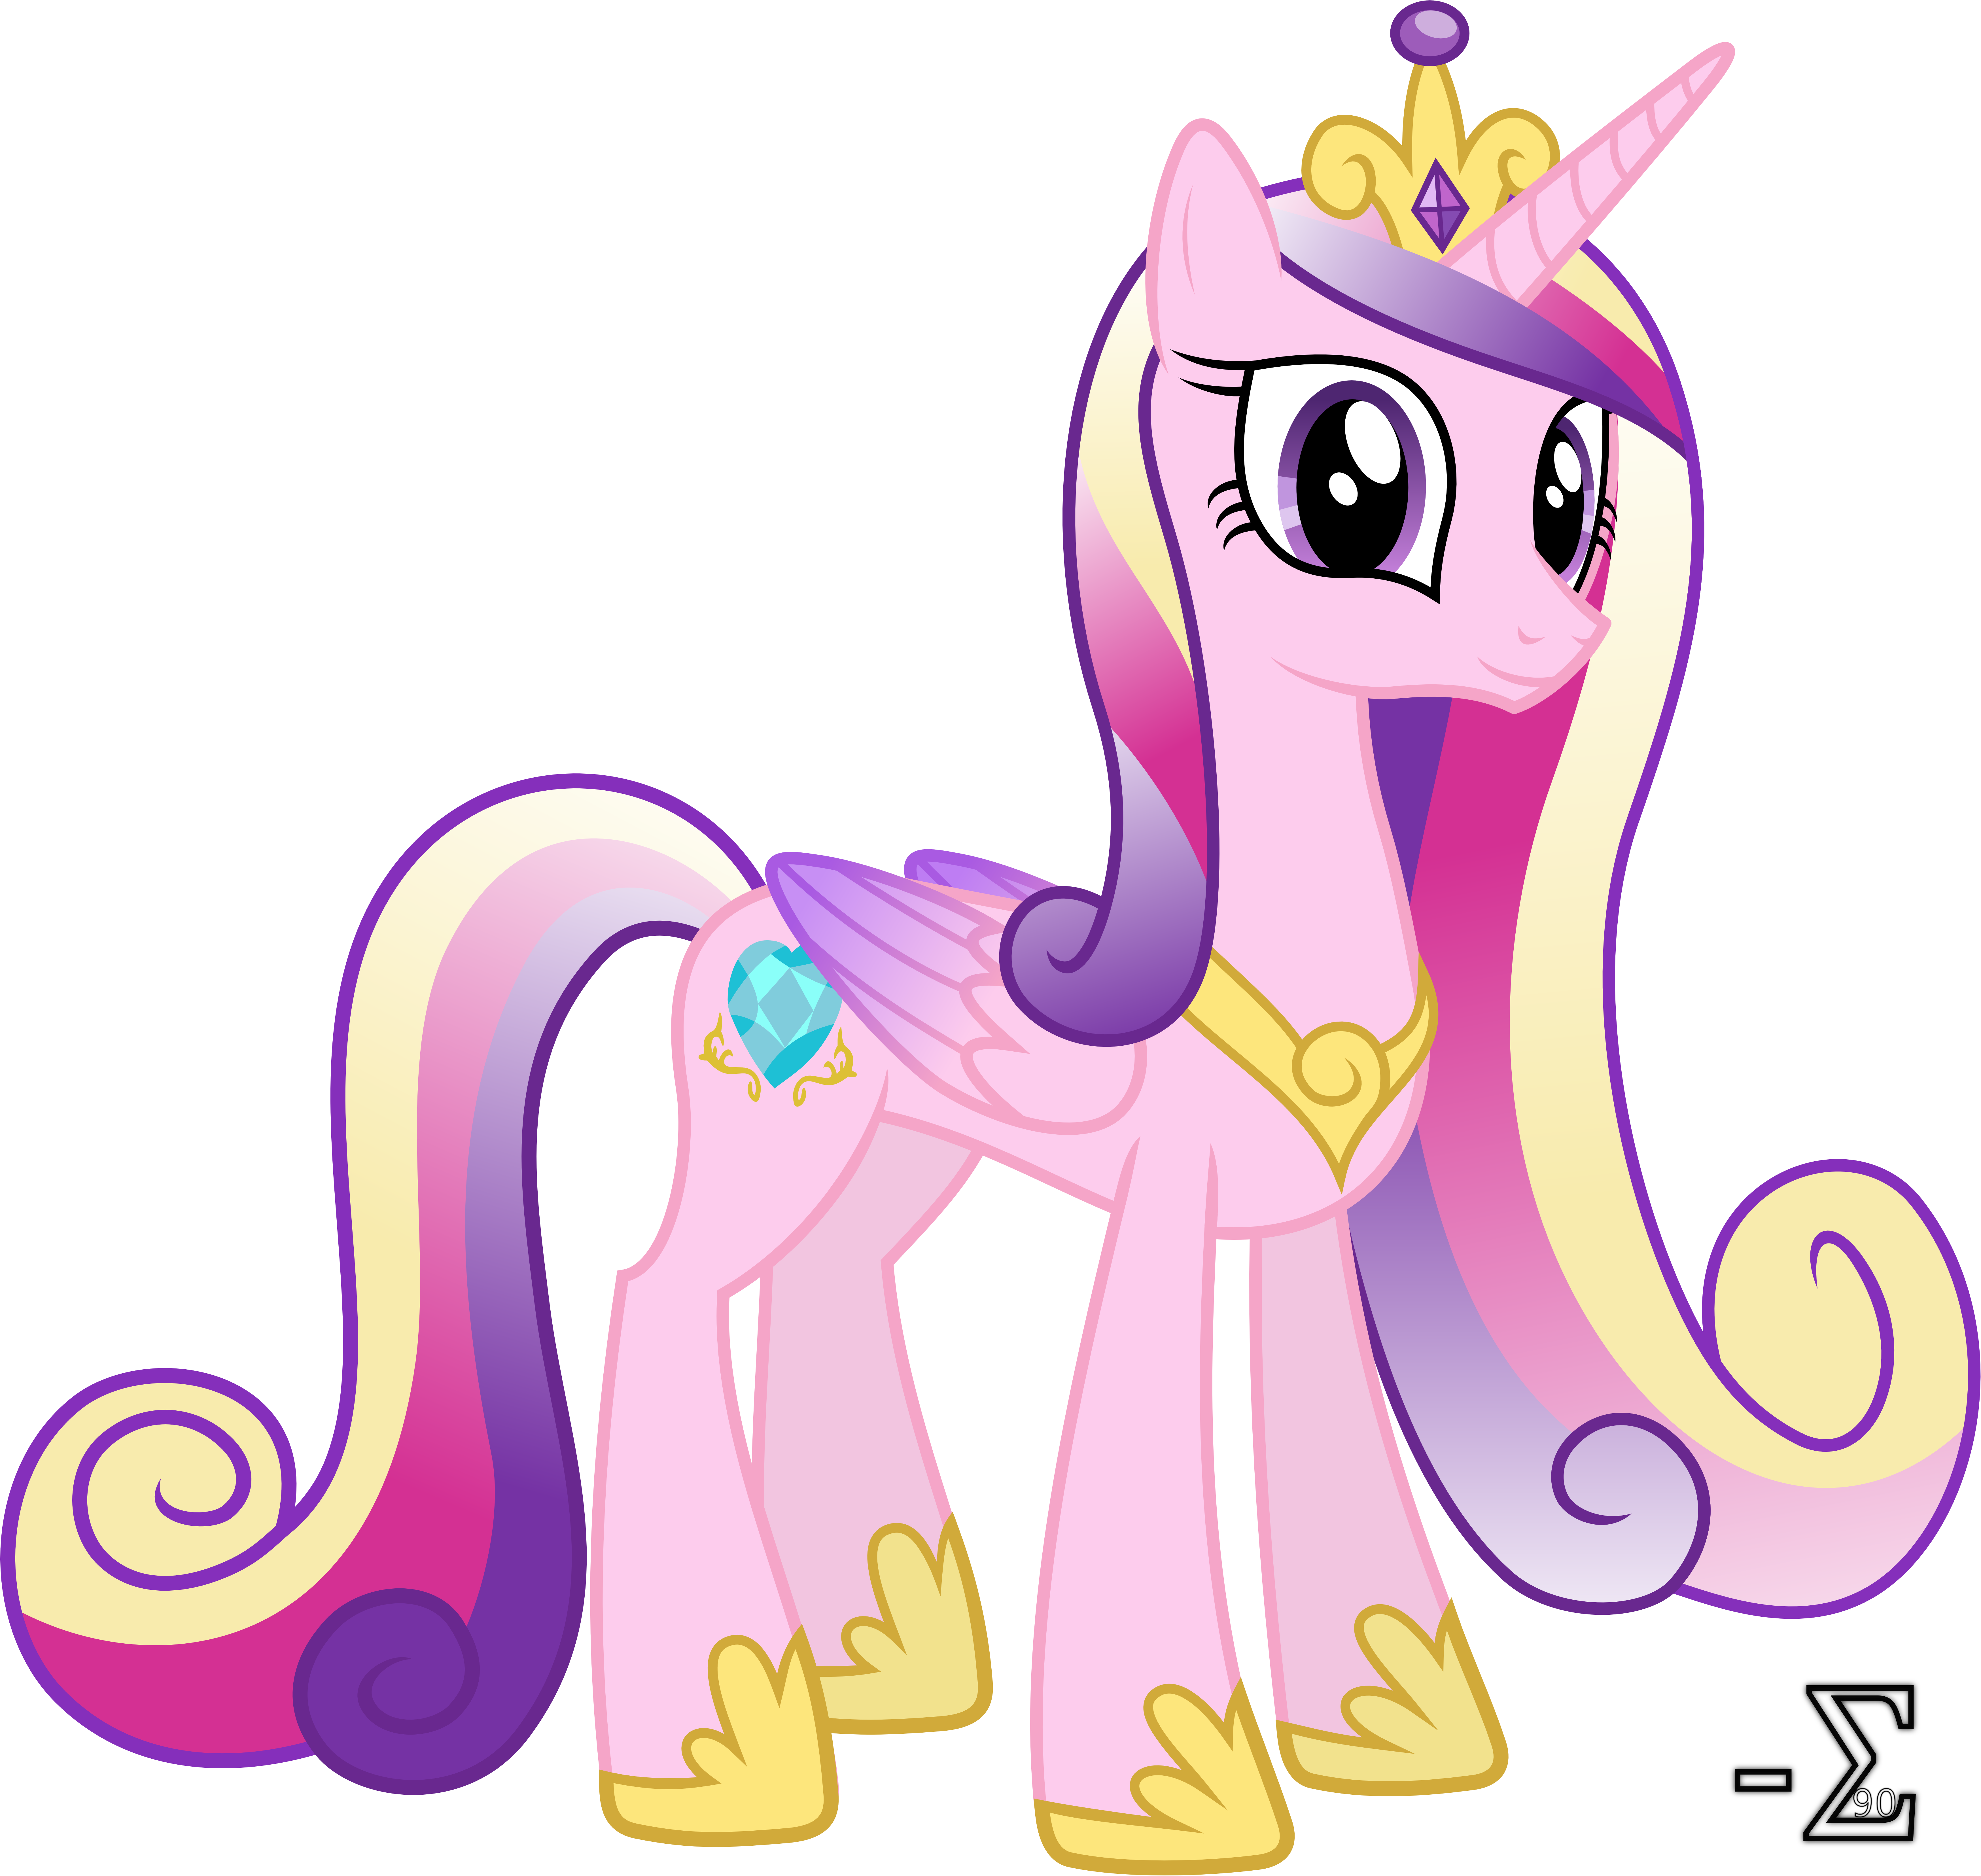 Adorable Princess Cadance By 90sigma On Deviantart Images Of Princess Cadence